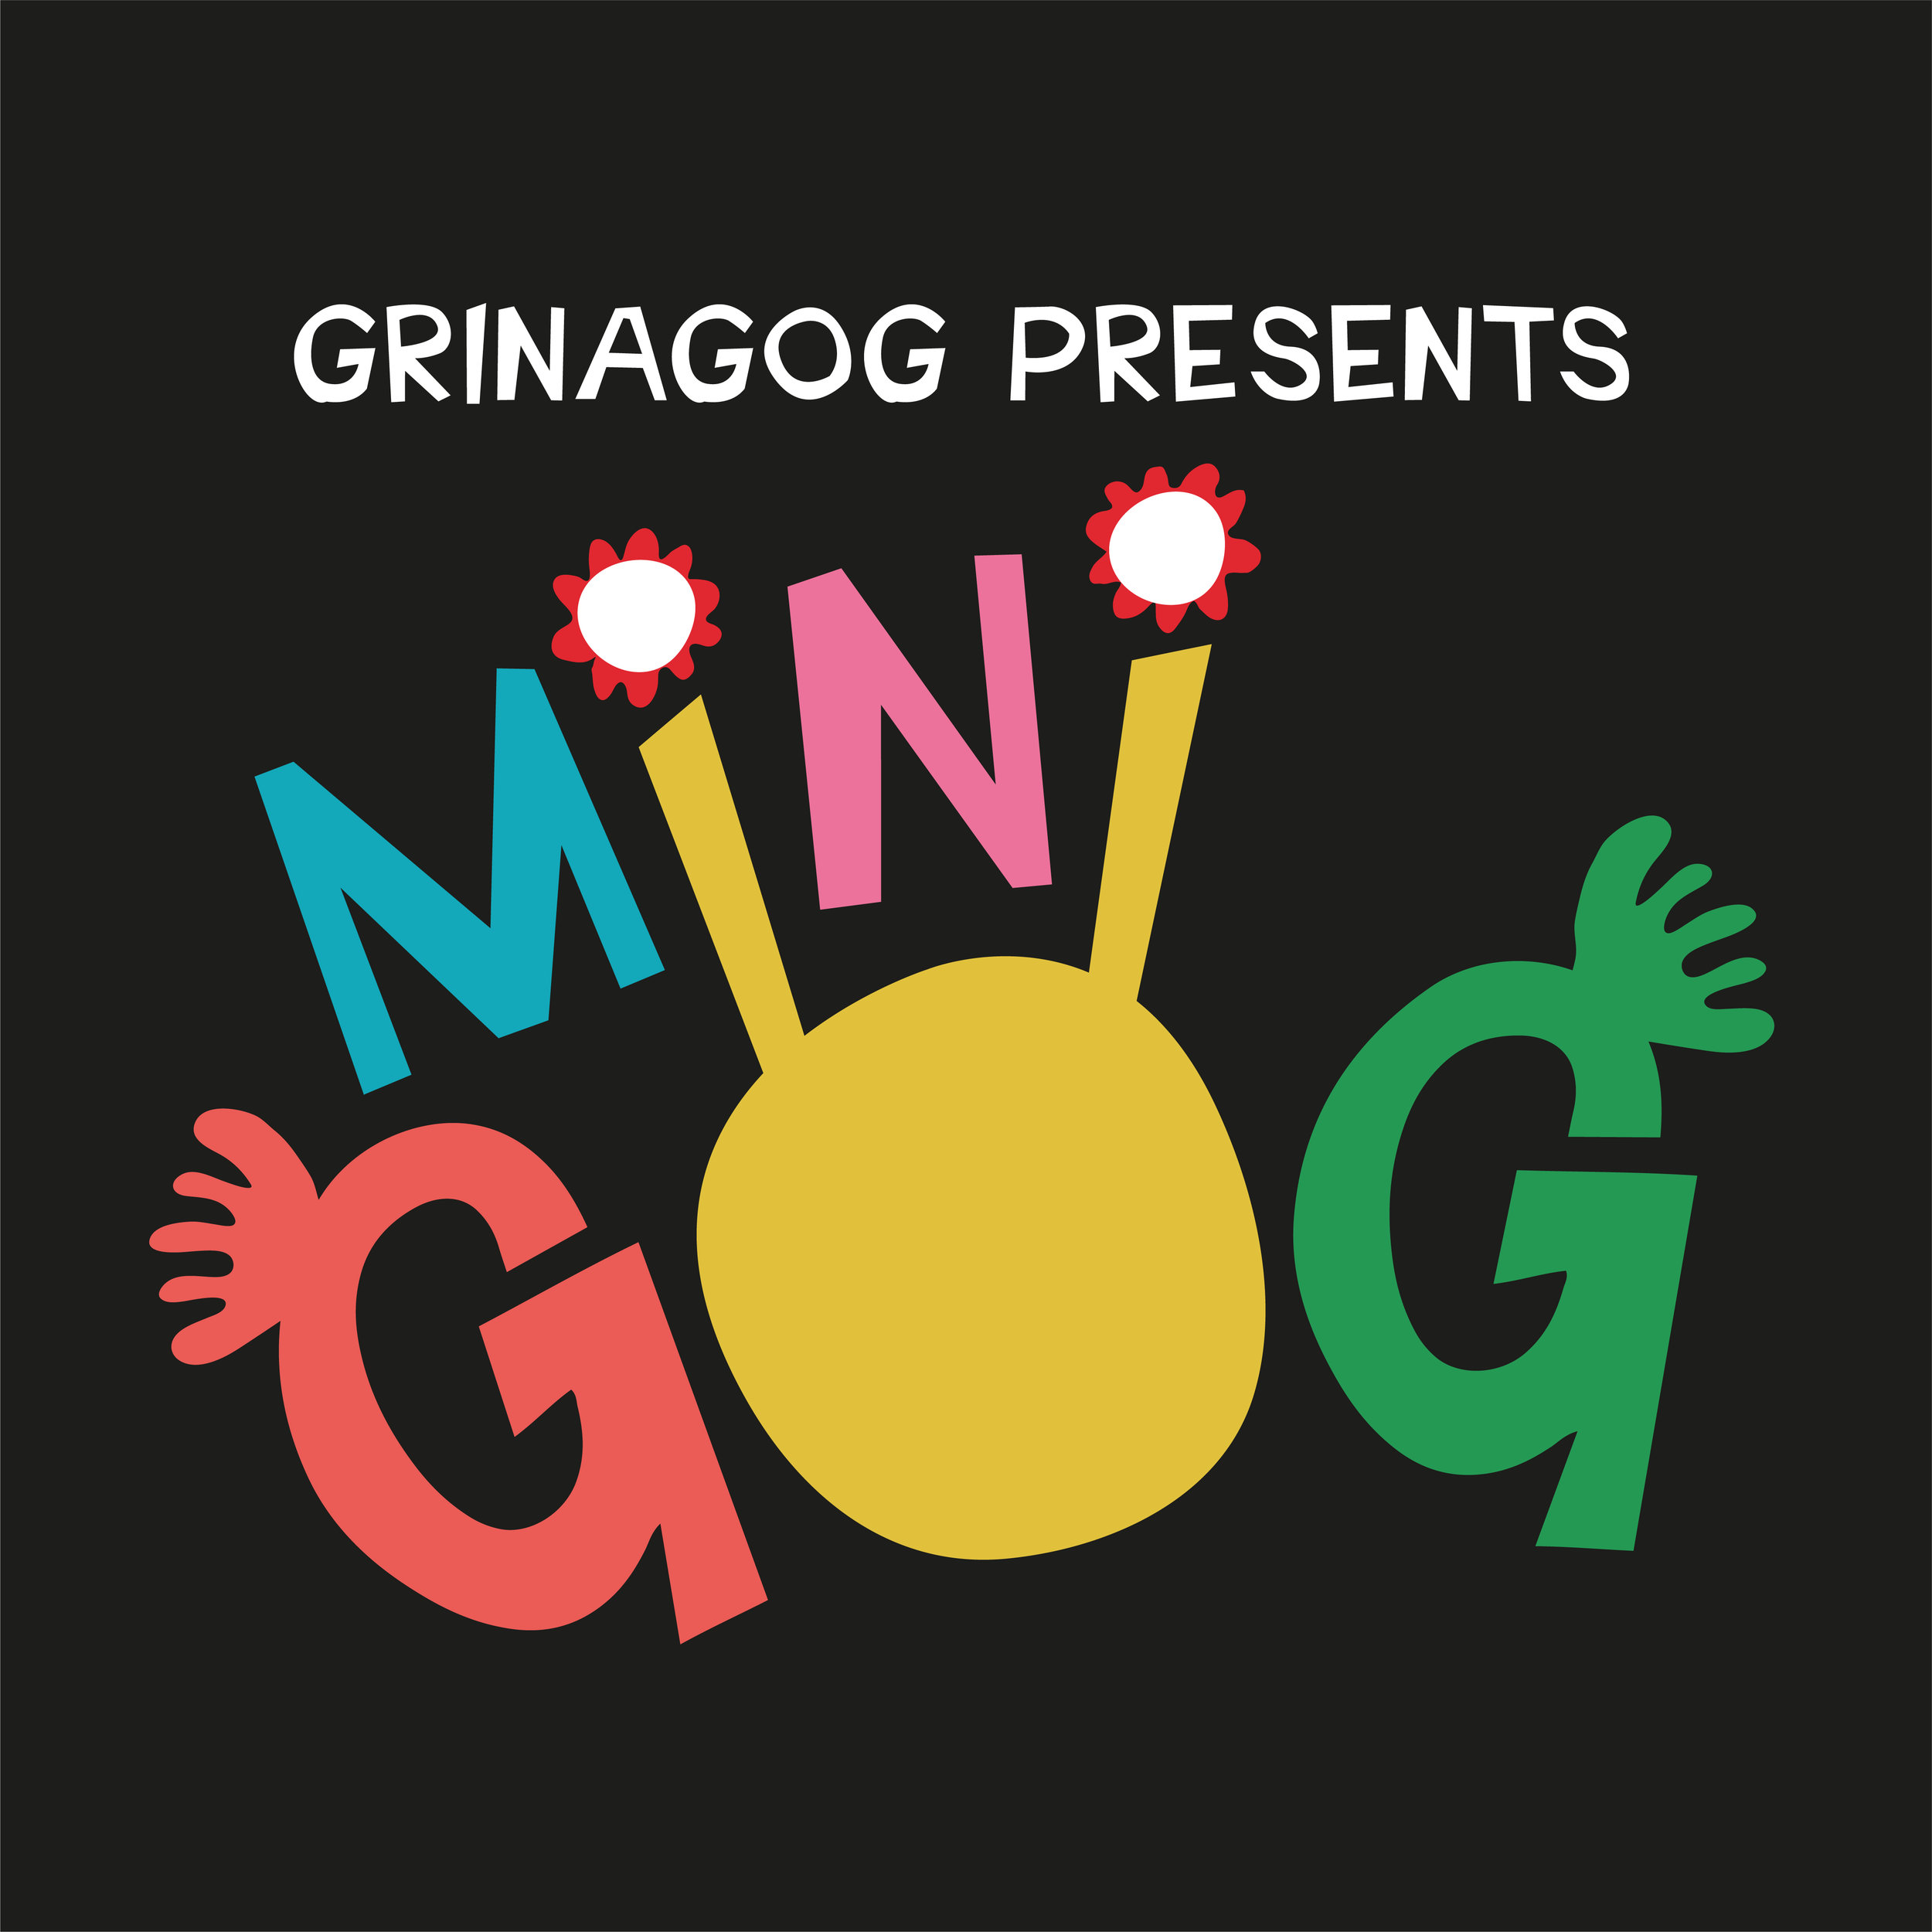 Torbay Council and Continentail Drifts are delighted to announce that Minigog, a micro version of Grinagog Festival will be coming to Torbay this Easter holiday. - Minigog will run on Saturday 13 April 2019 at Torre Abbey's Spanish Barn and Gardens.